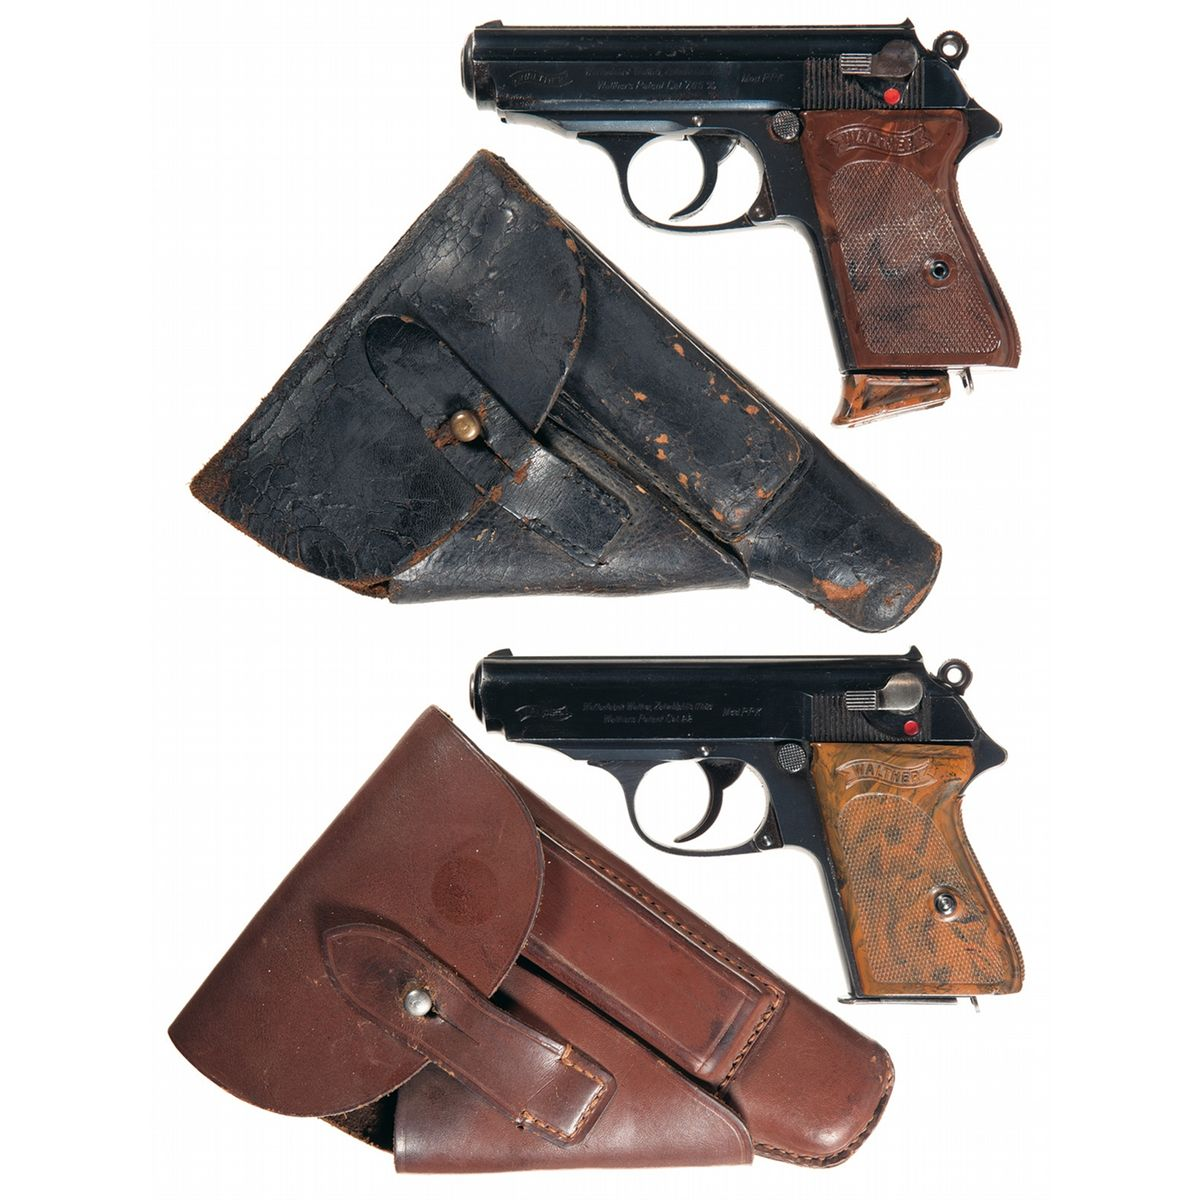 Two Walther PPK Semi-Automatic Pistols with Holsters -A